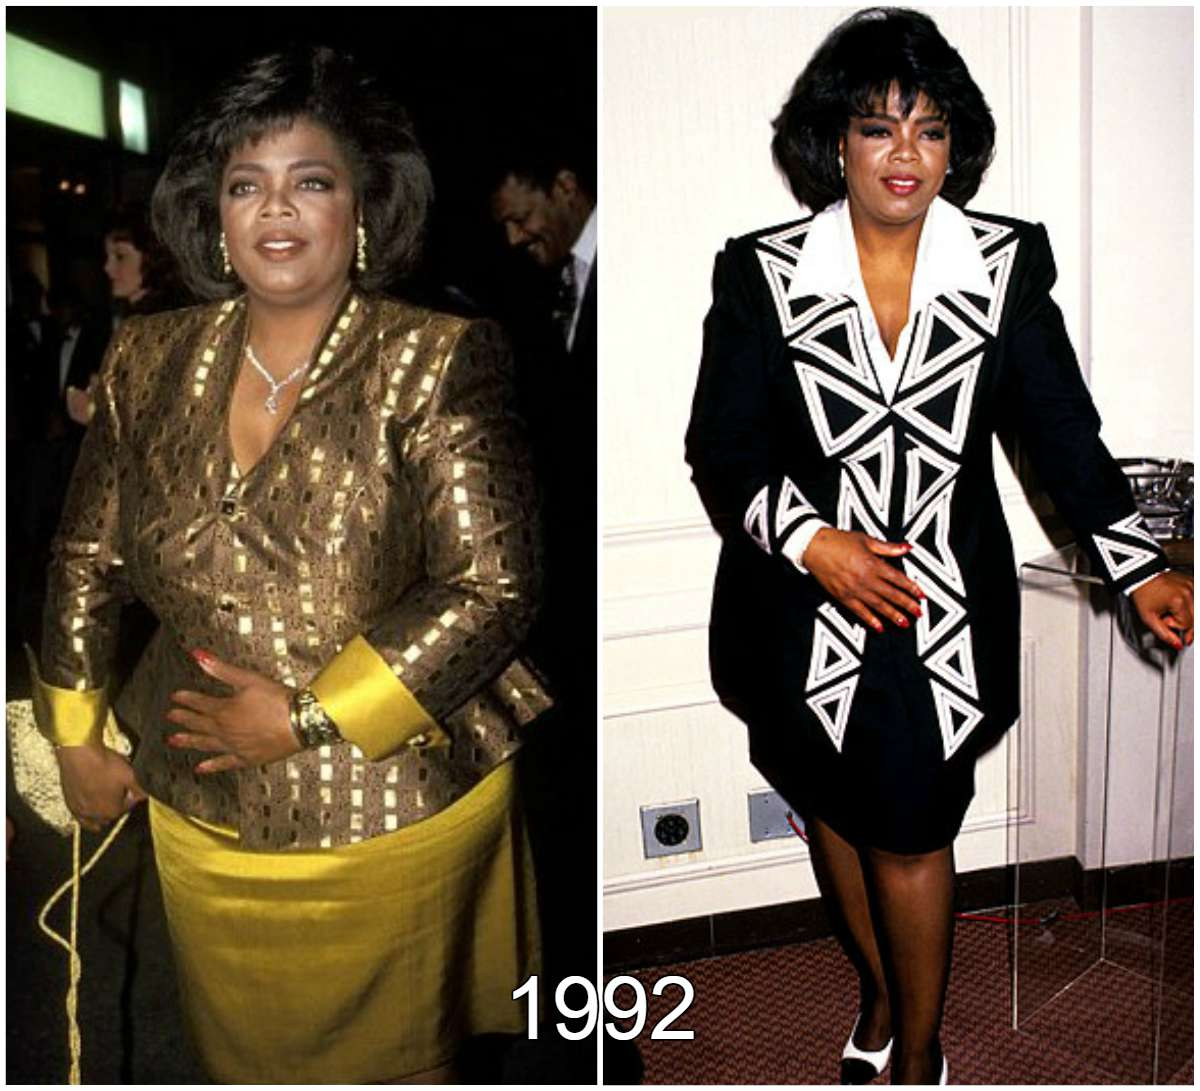 Oprah Winfrey put on weight in 1992